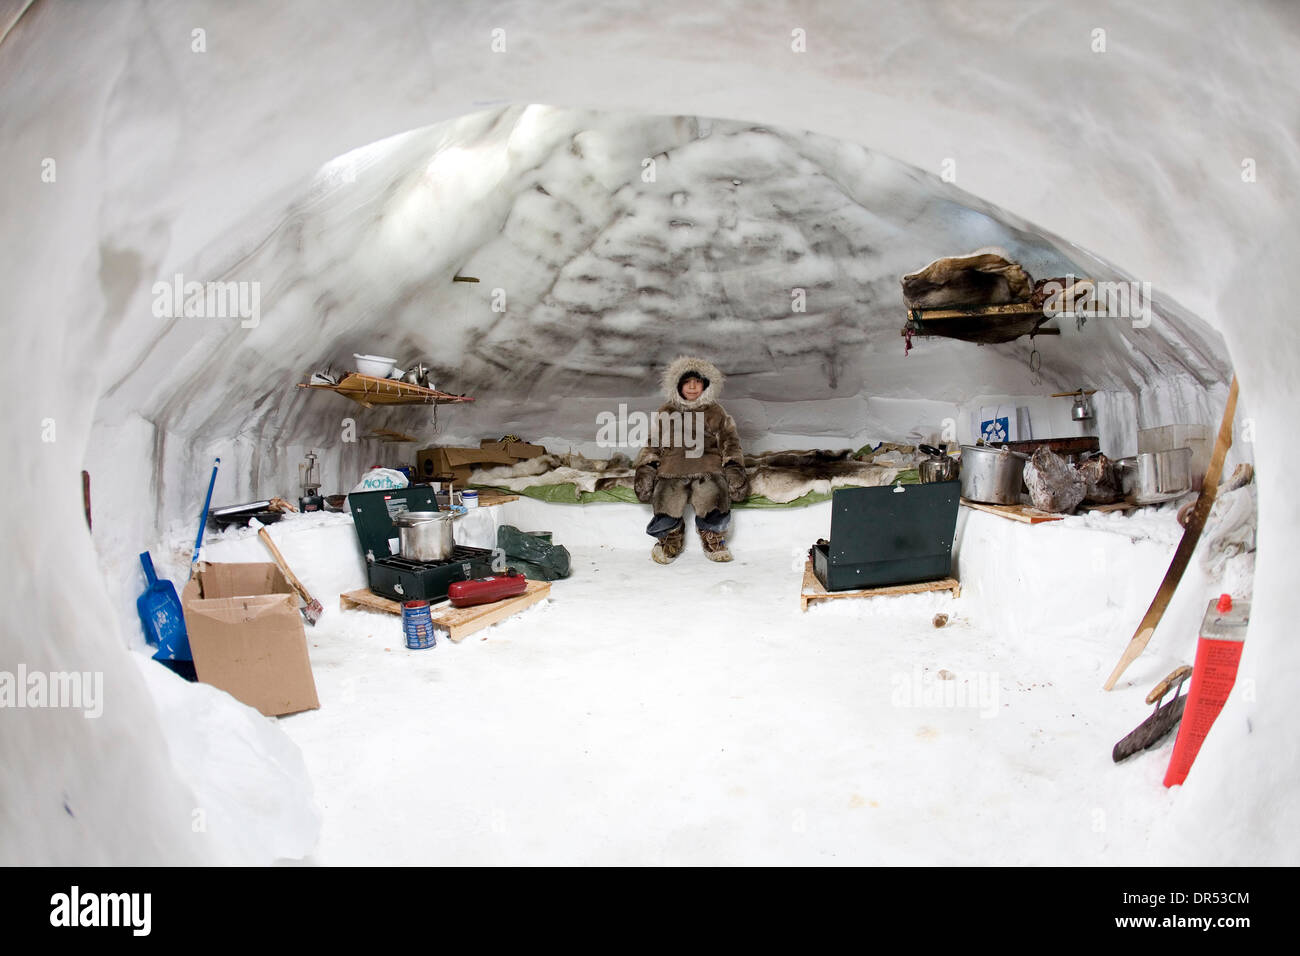 A young inuit sits on a bed in an igloo, surrounded by other necessary items to survive in the harsh cold climate. Stock Photo